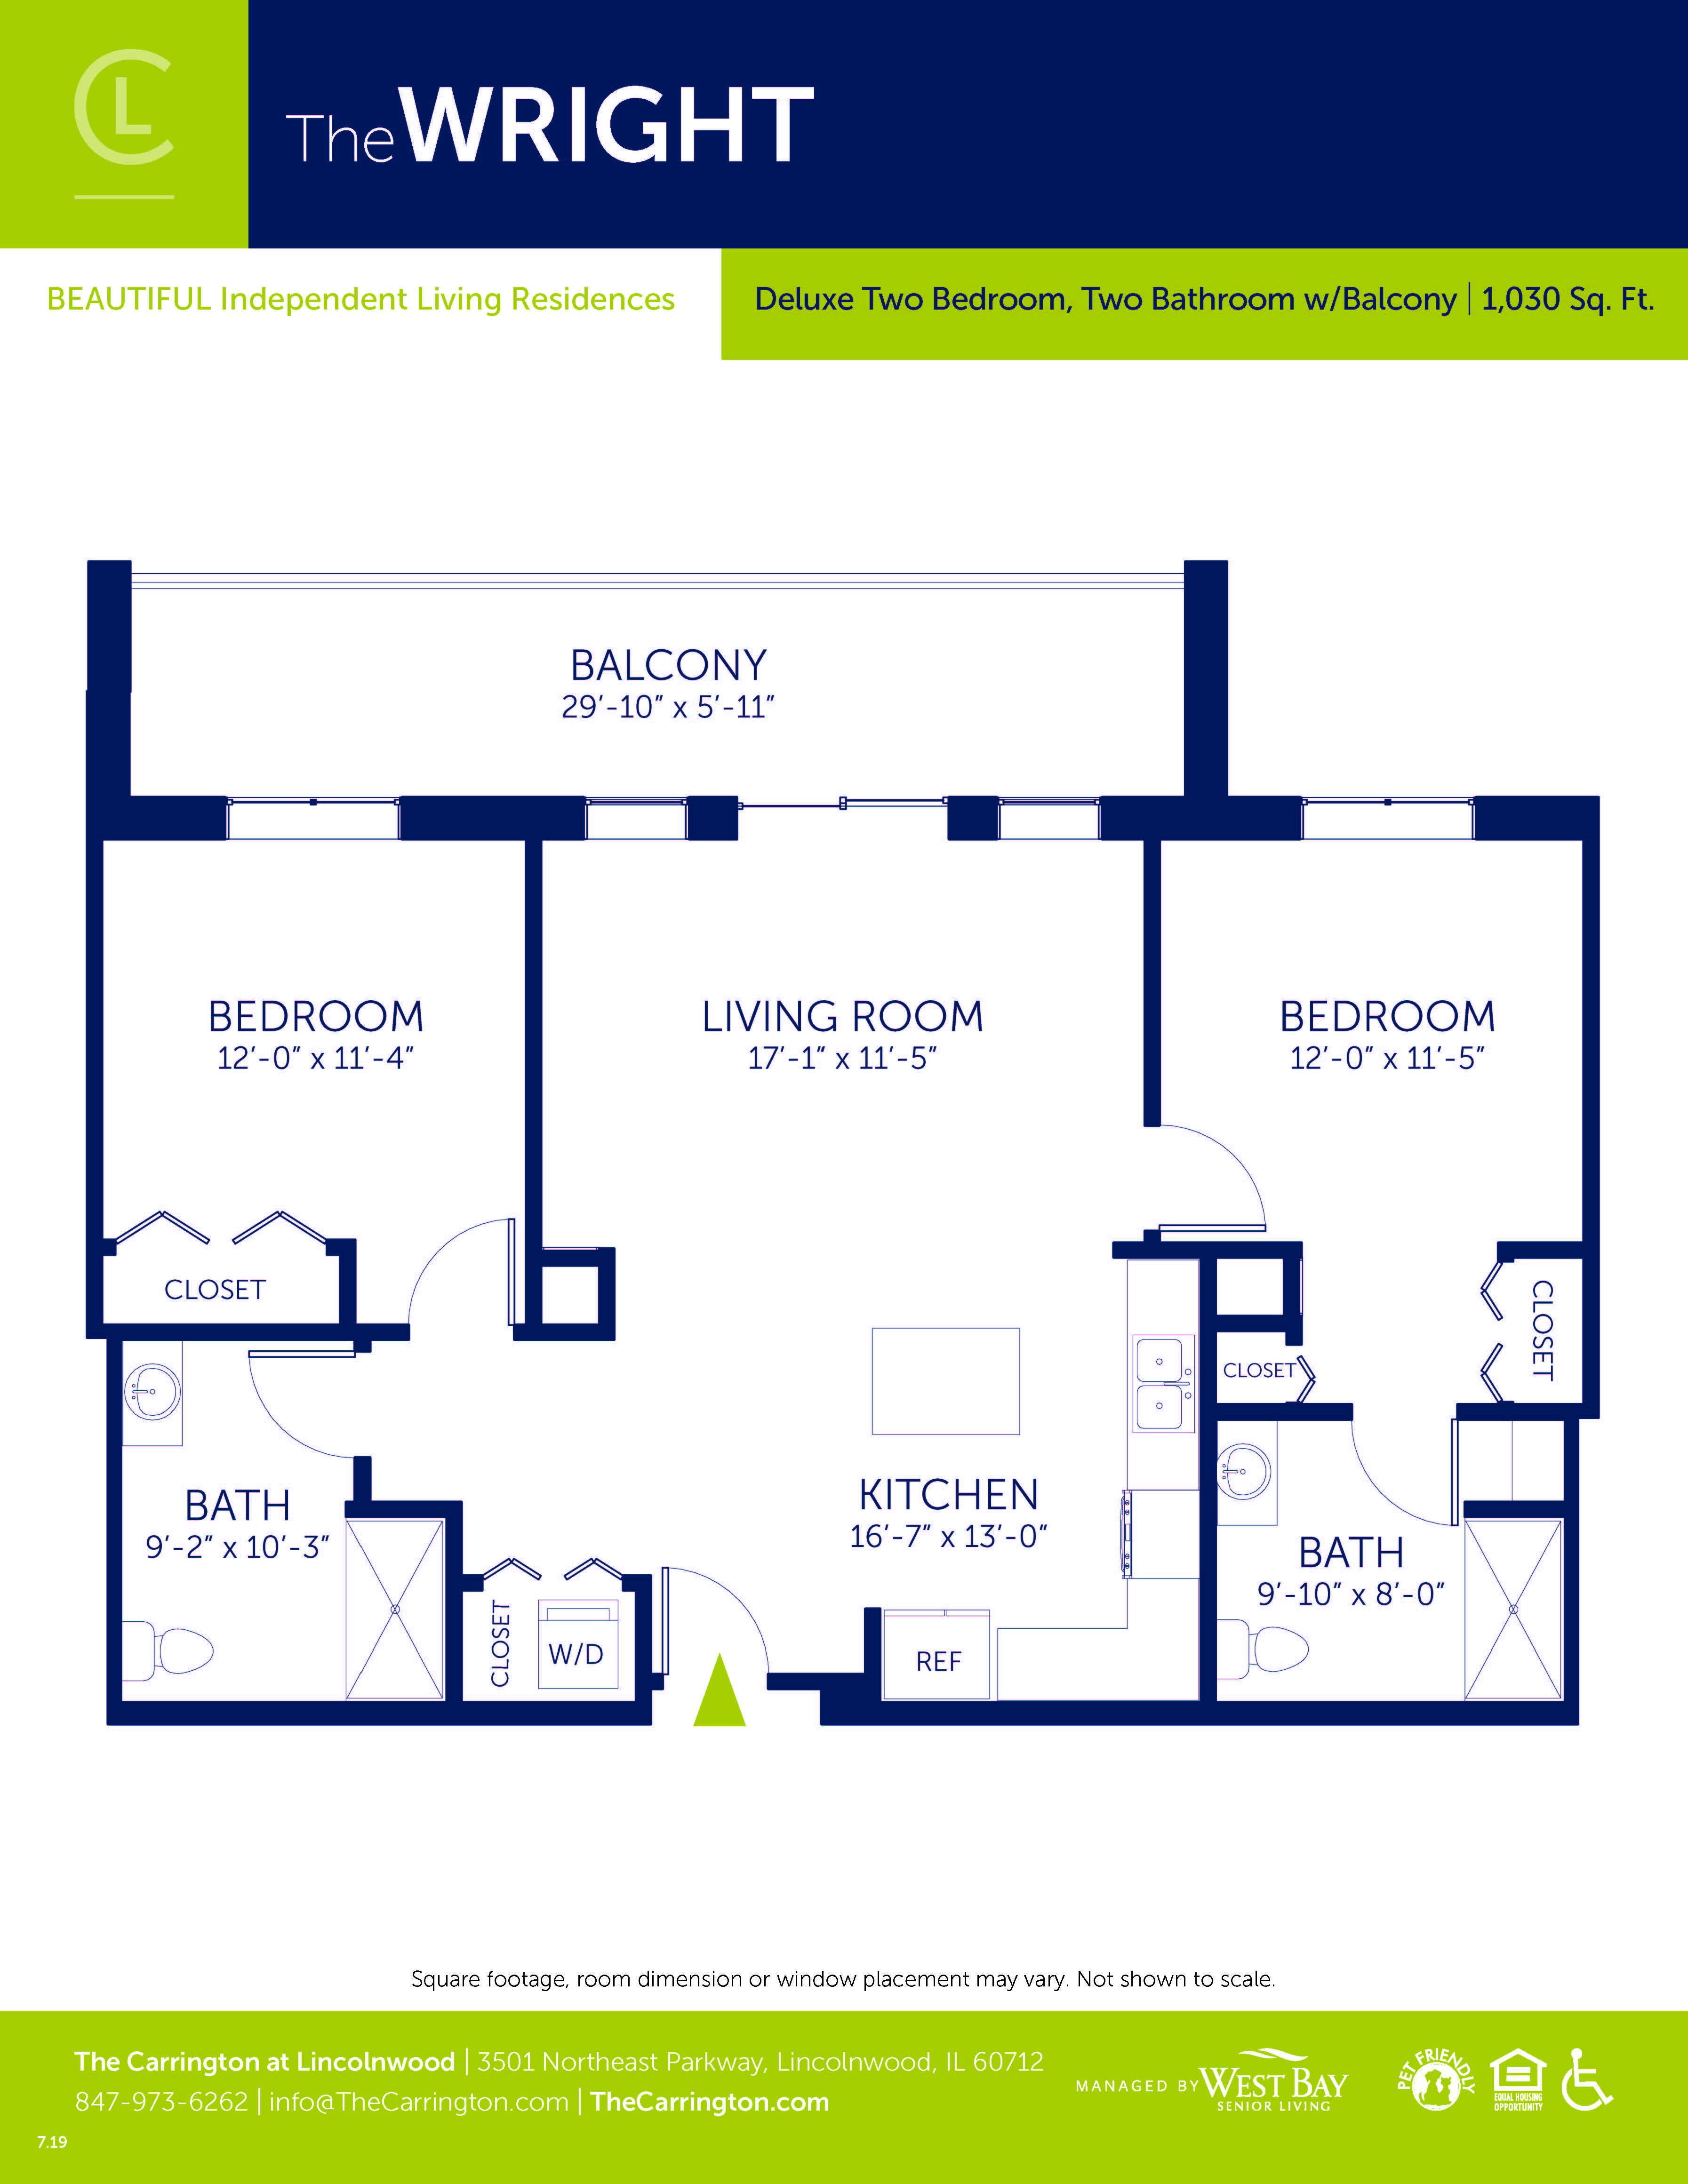 Wright - Deluxe Two Bedroom